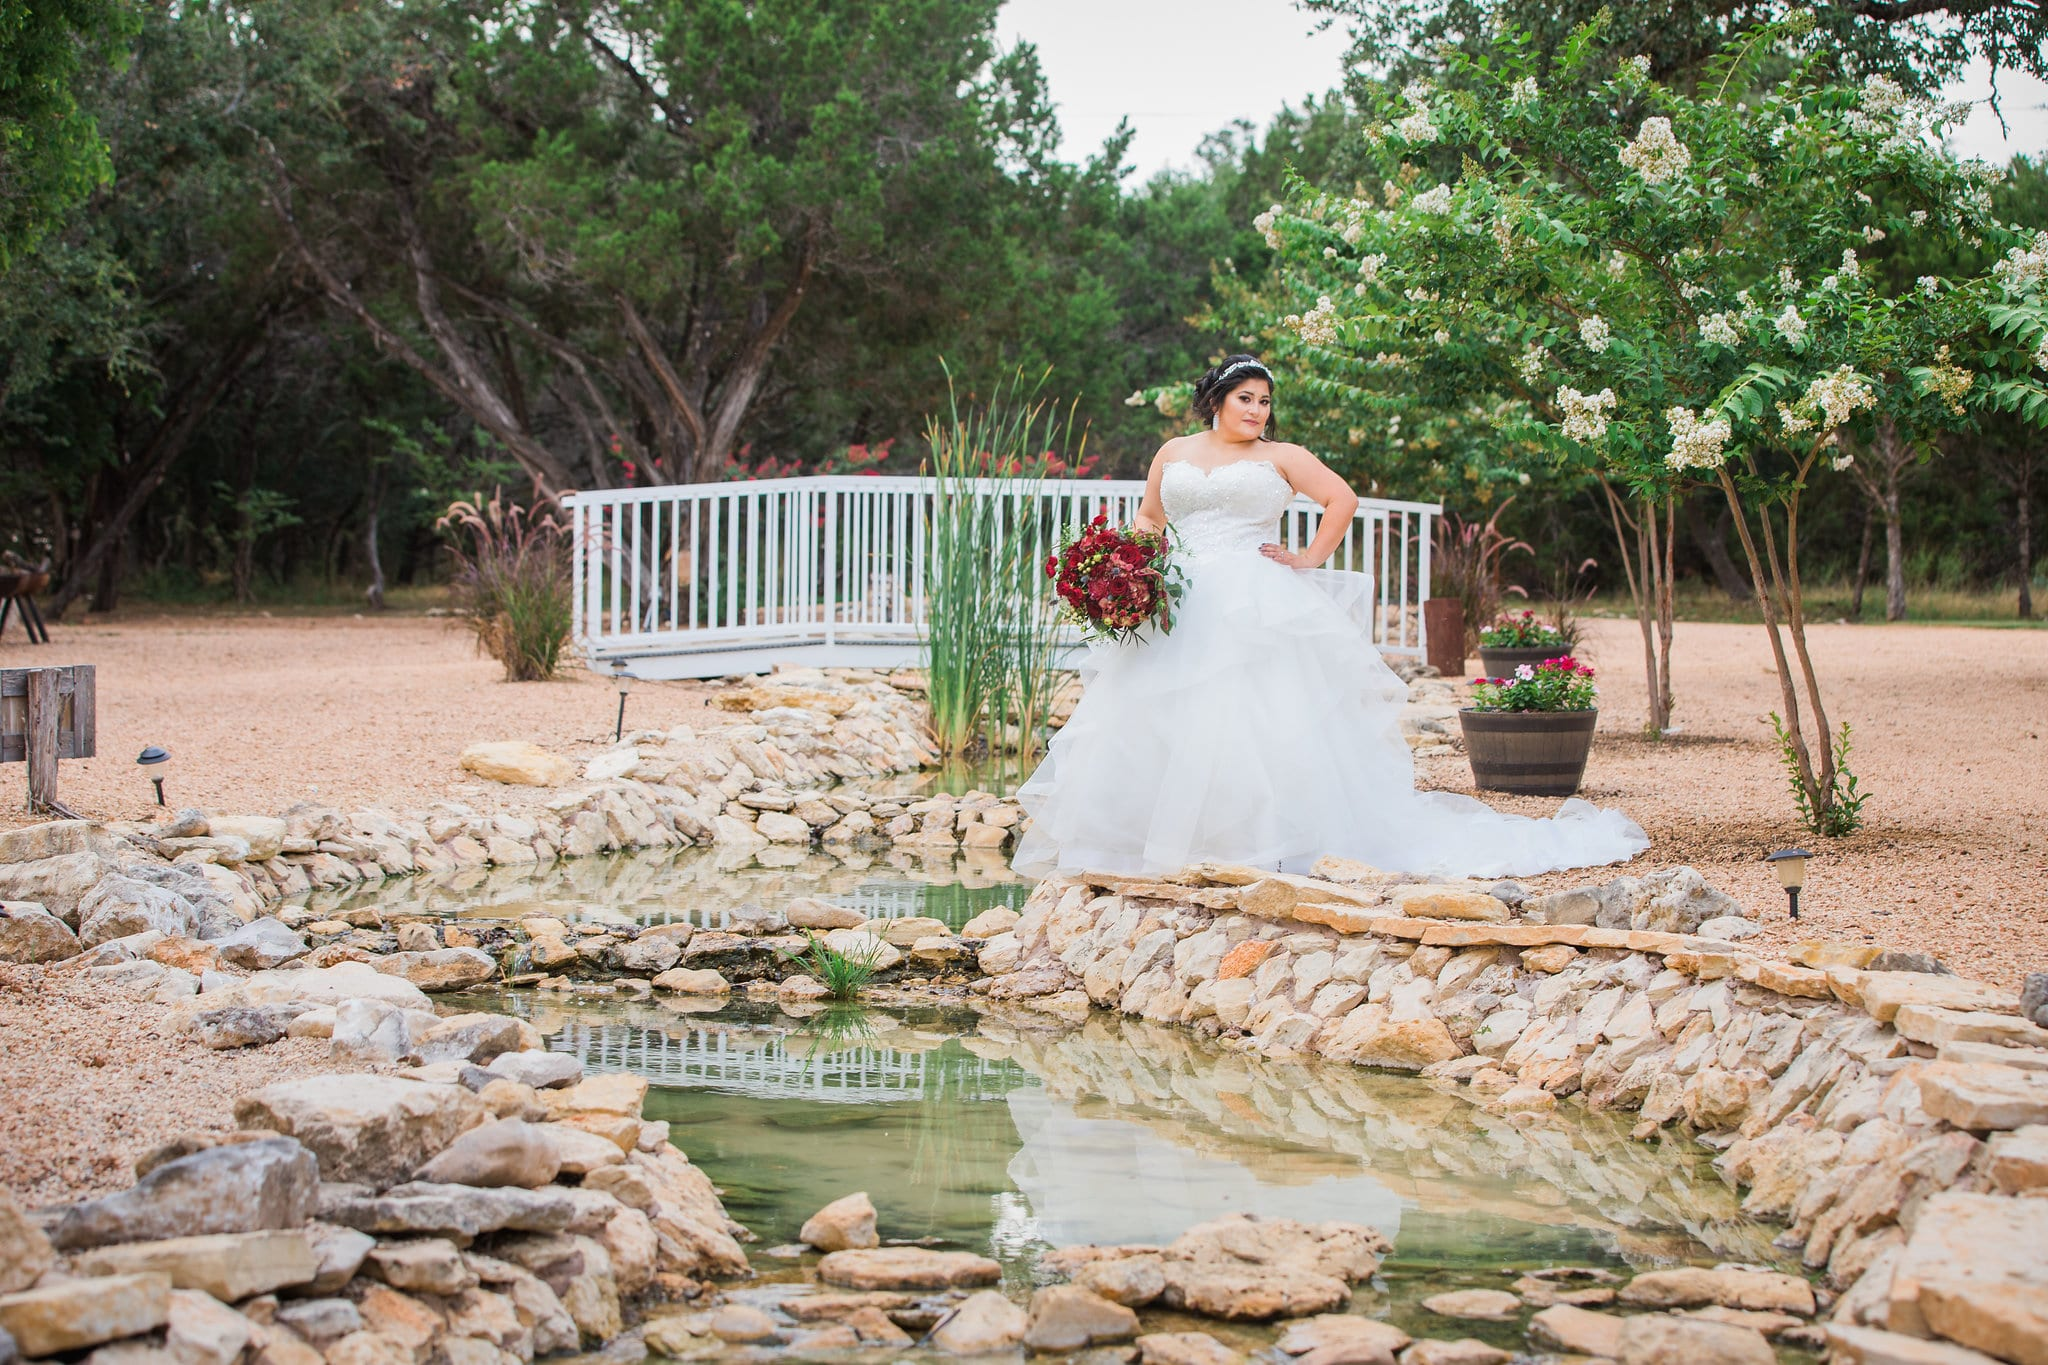 Laura's Bridals at Western Sky on the spring